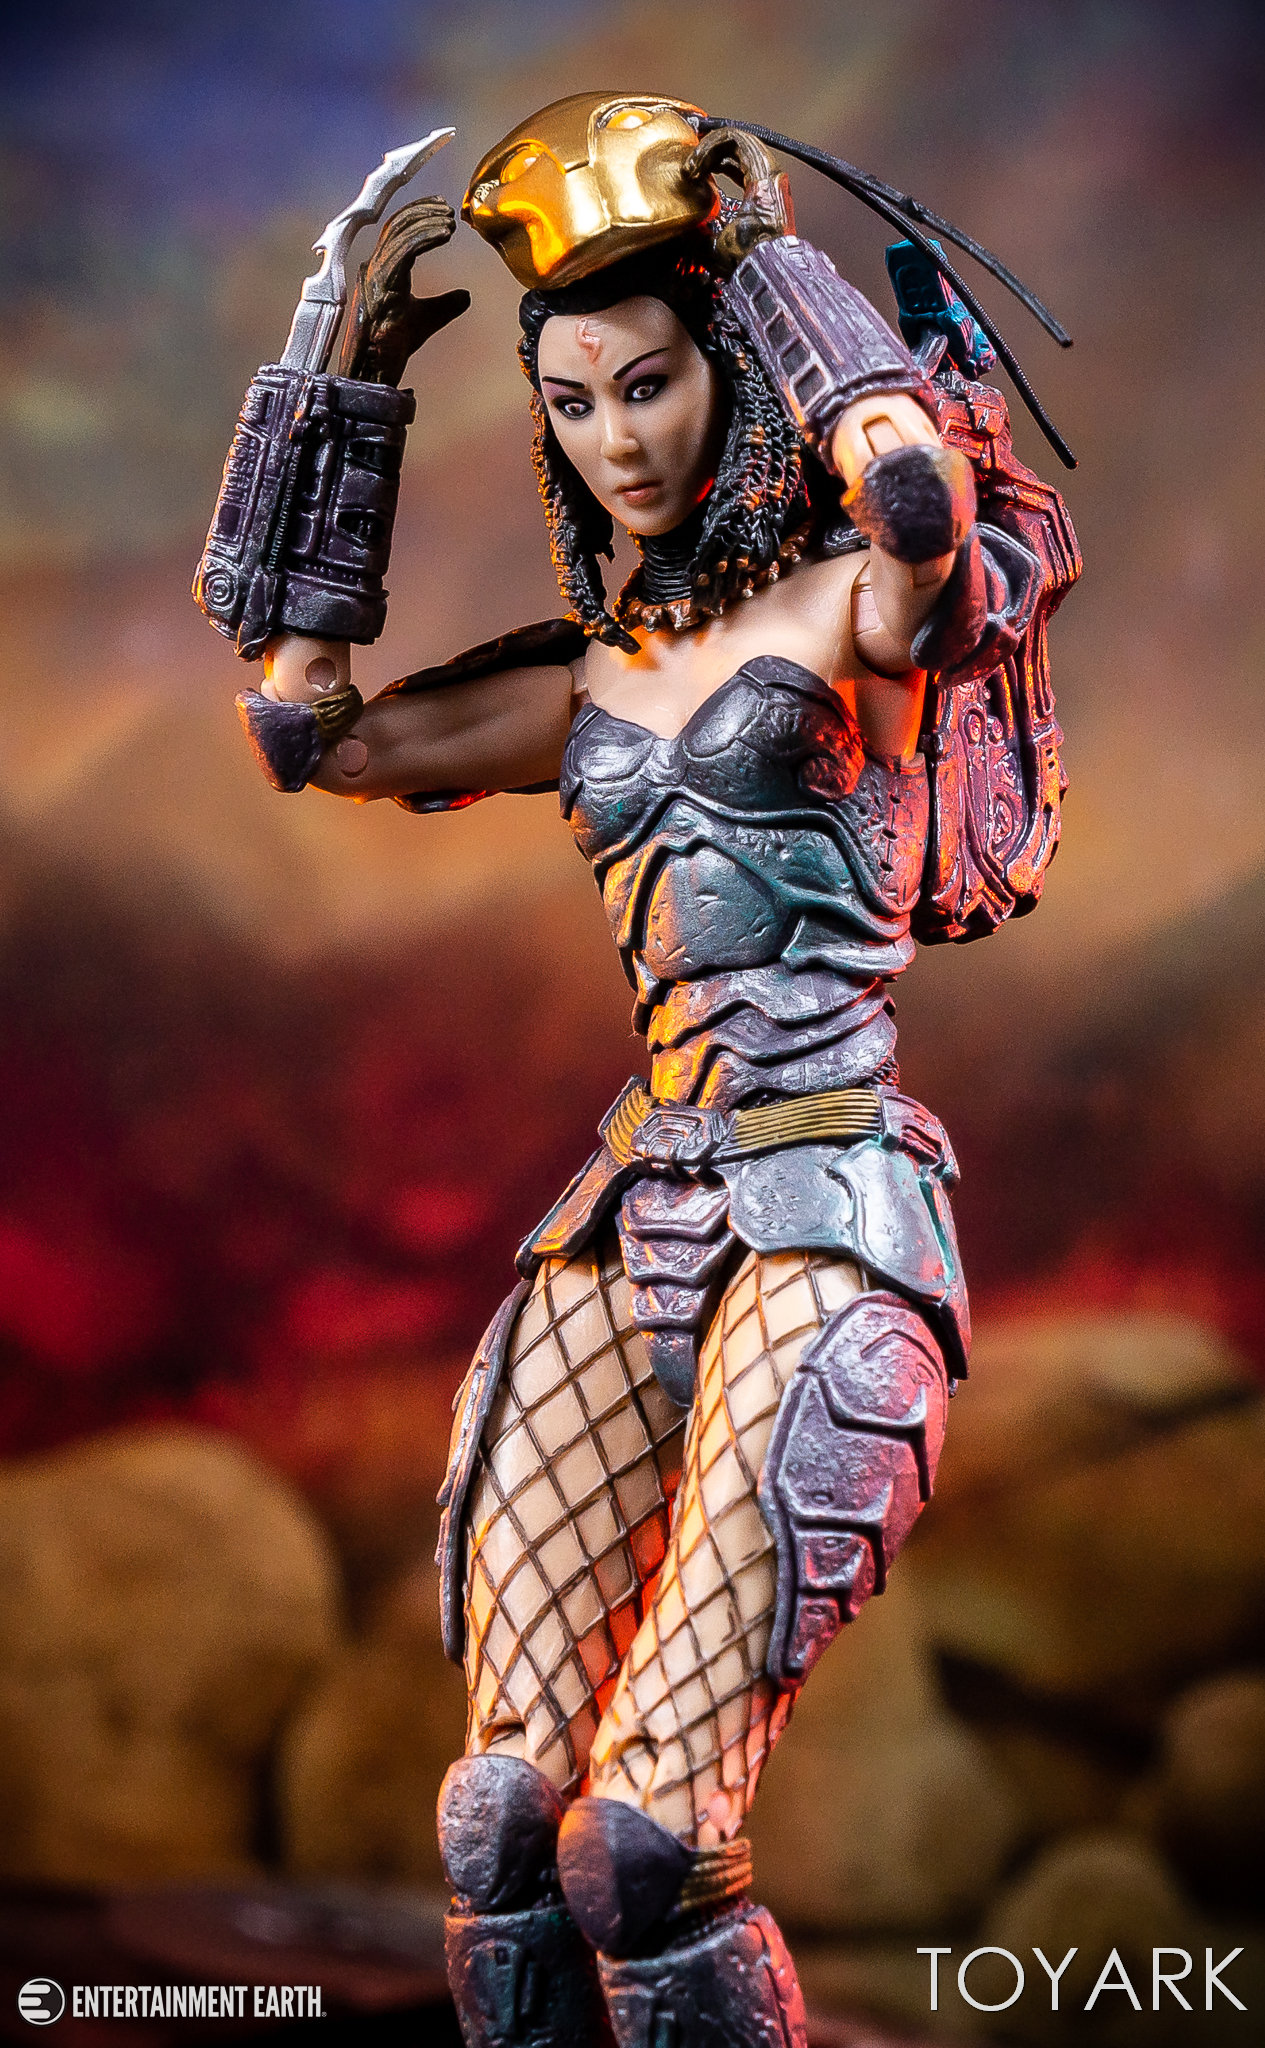 https://news.toyark.com/wp-content/uploads/sites/4/2019/01/Predator-NECA-Series-18-Figures-032.jpg